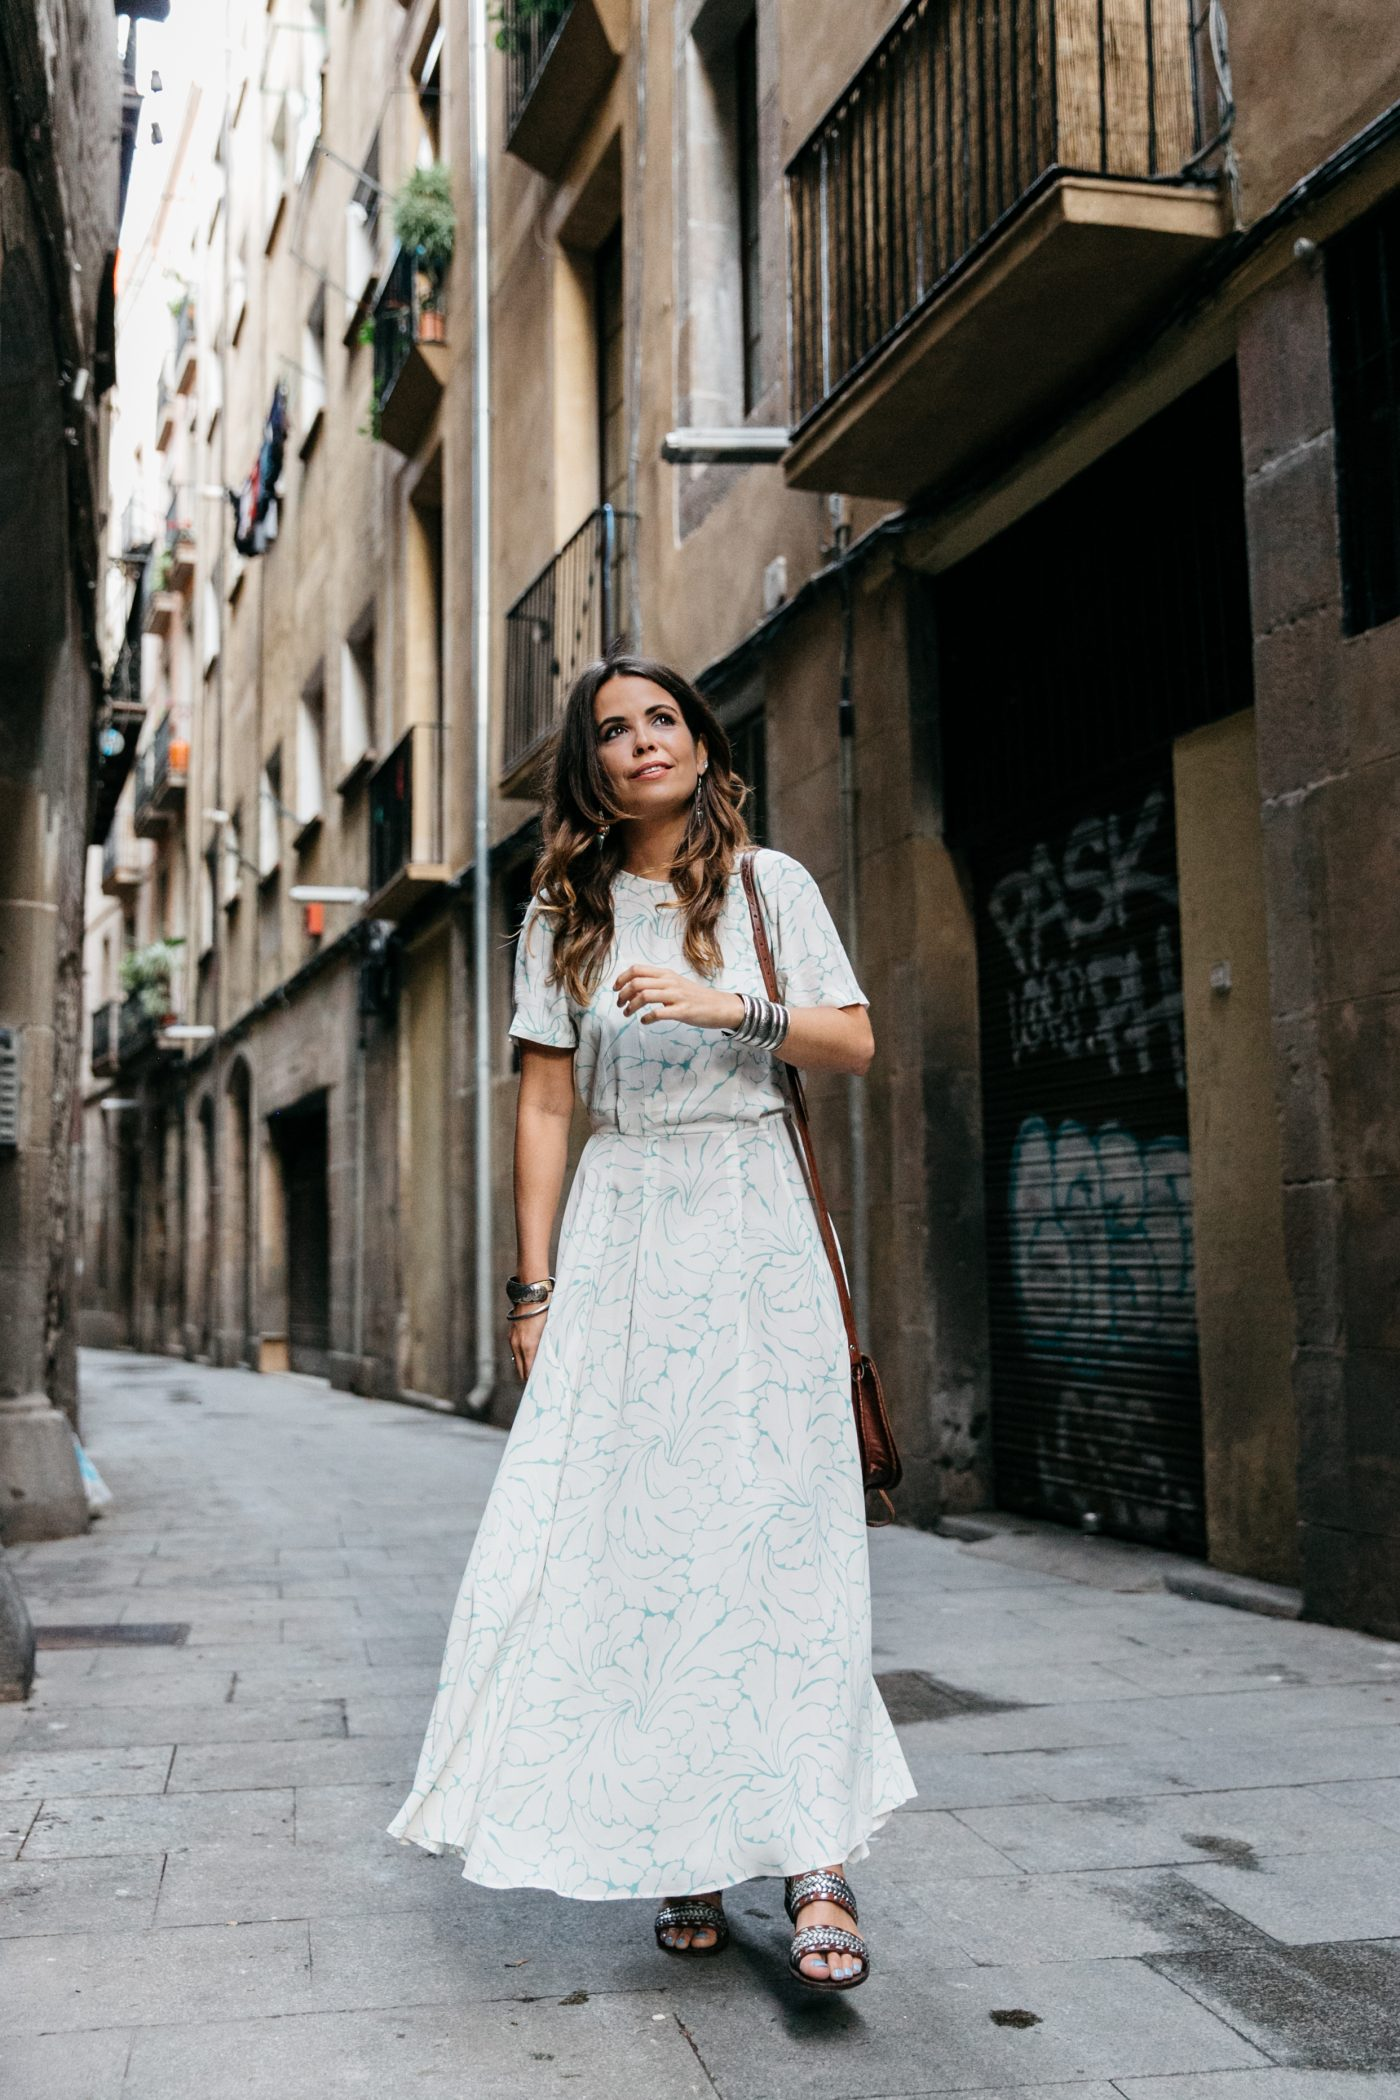 Long_Dress-HM_Leather_Bag-Maje_Sandals-Outfit-Primavera_Sound-Collage_Vintage-Street_Style-15